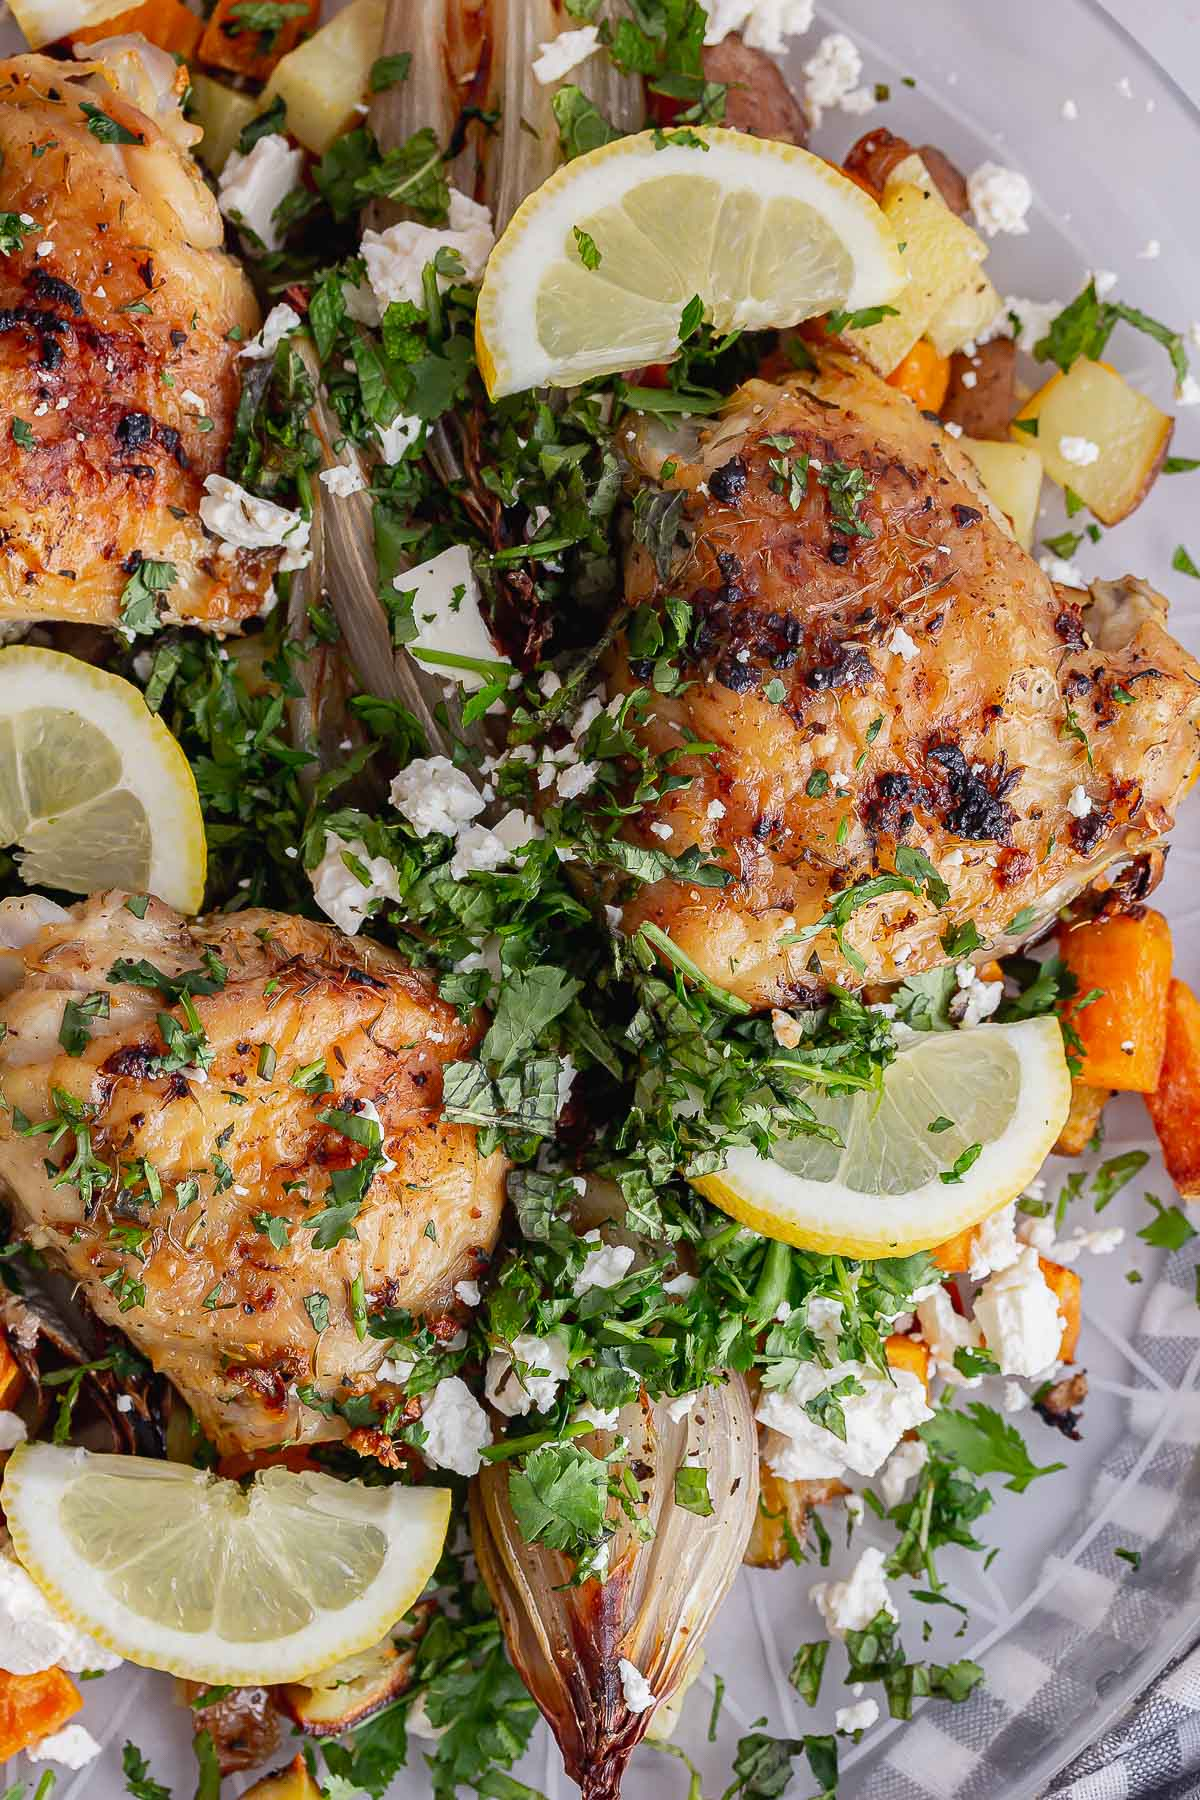 Overhead shot of chicken with lemon slices